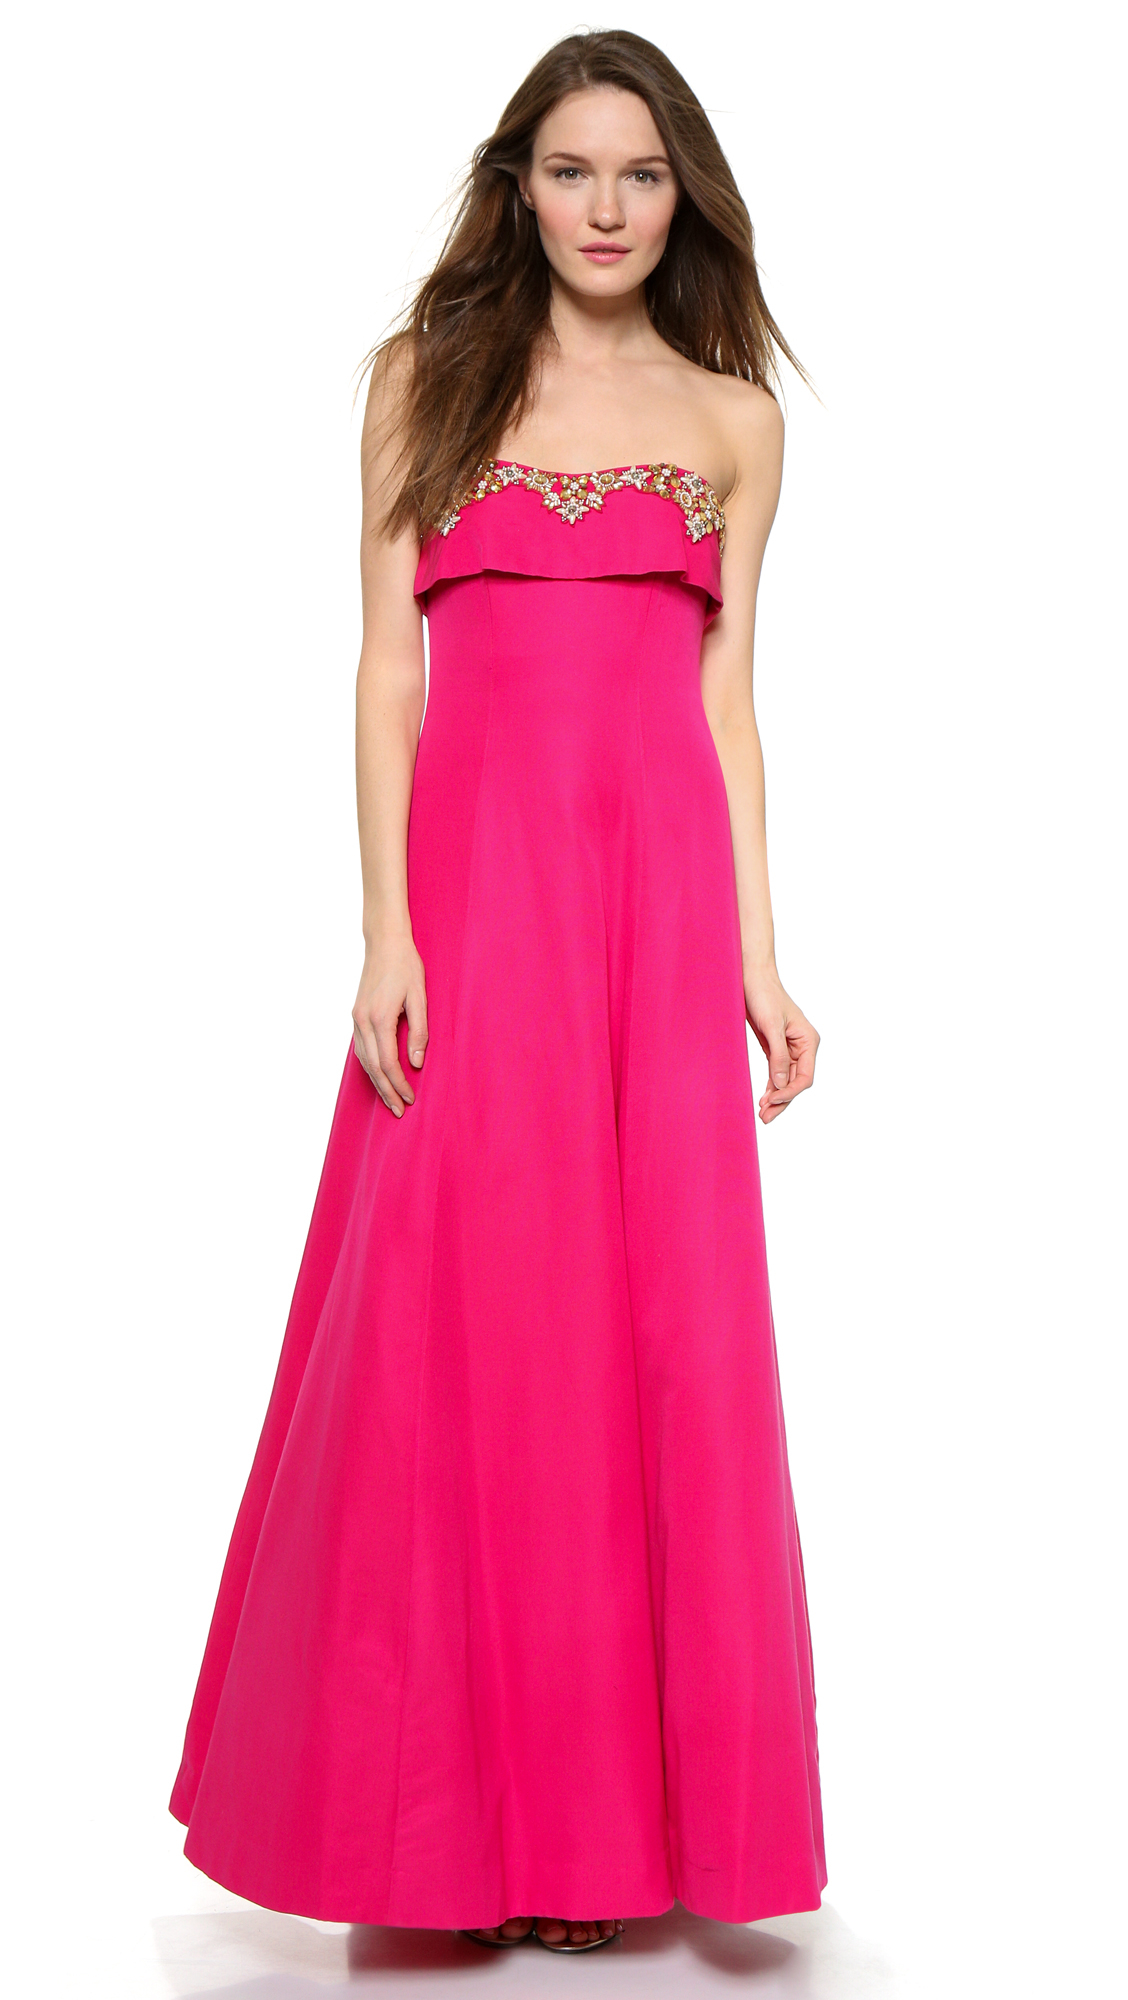 Notte by marchesa Strapless Gown - Fuchsia in Purple  Lyst